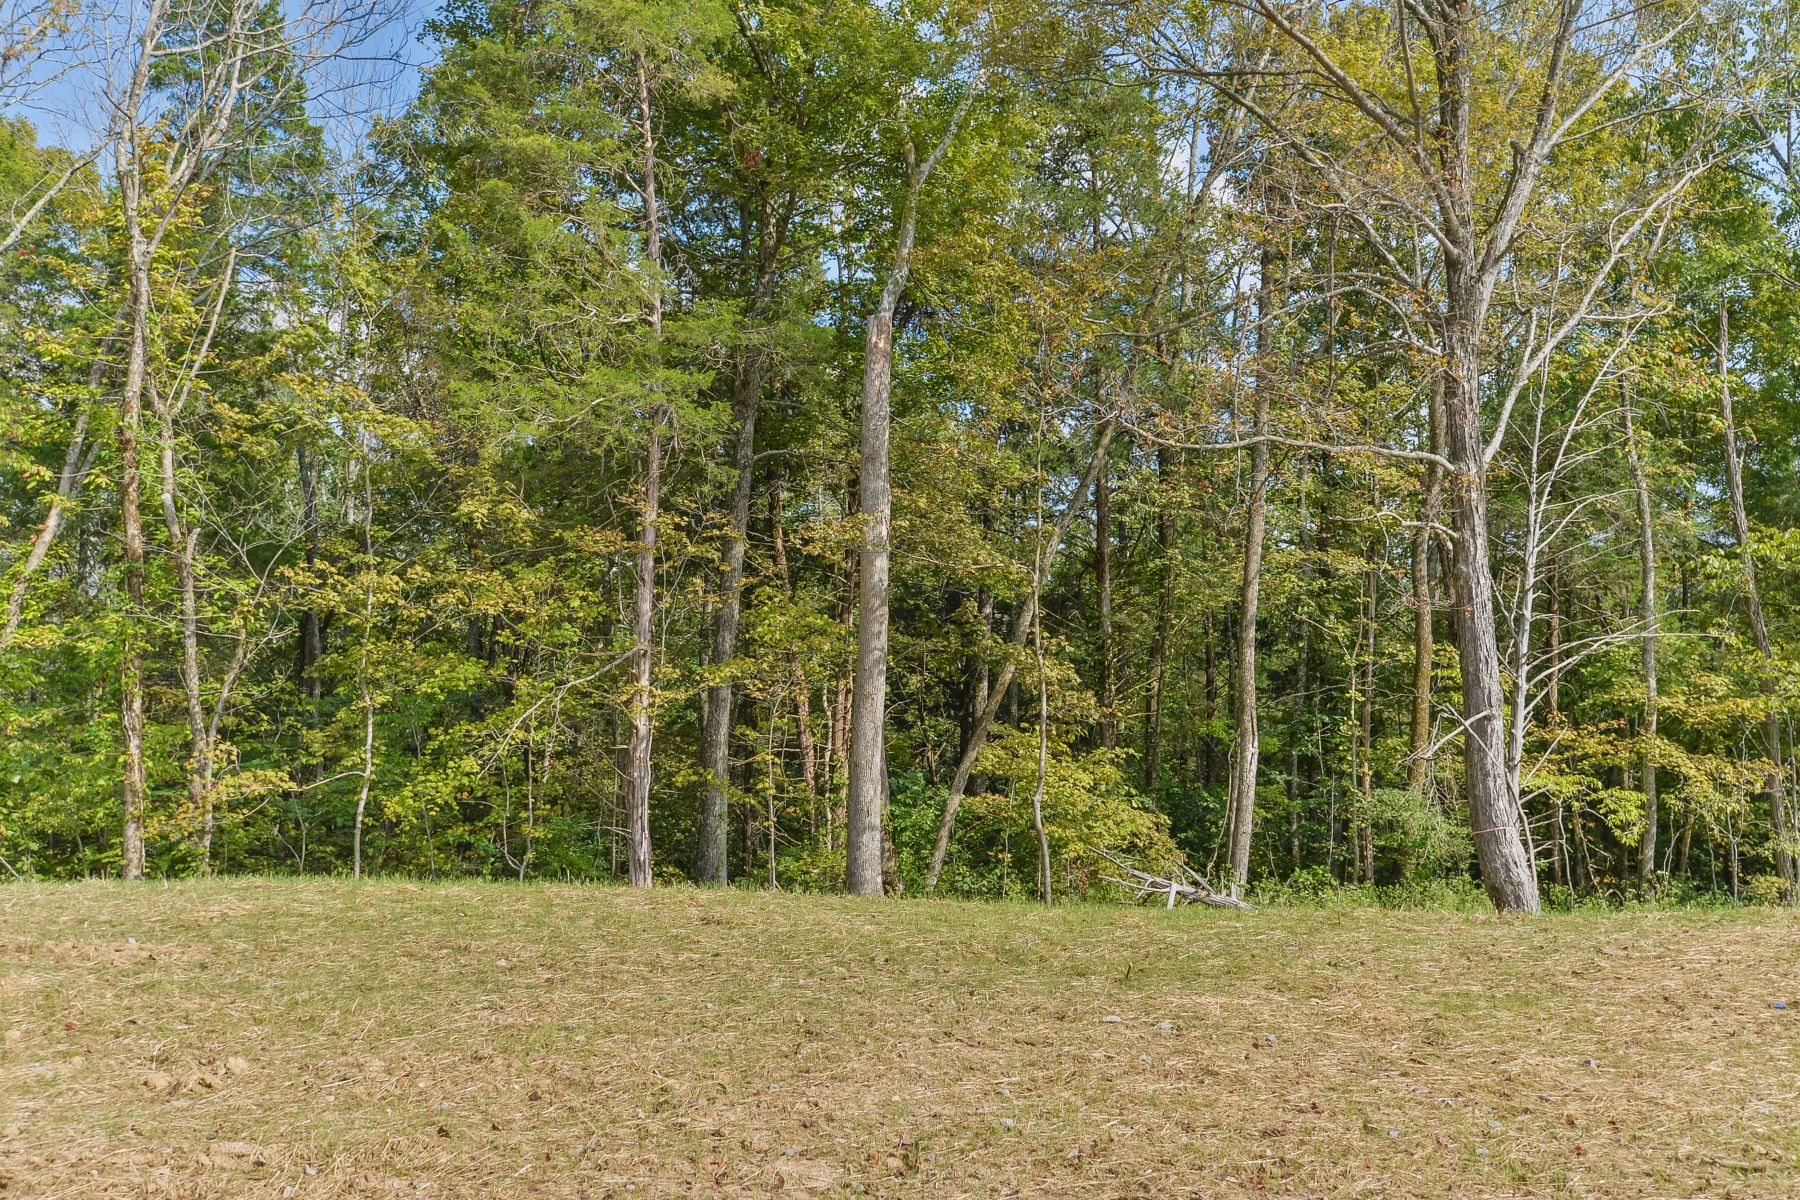 Additional photo for property listing at 37 Shakes Creek Drive 37 Shakes Creek Drive Fisherville, Kentucky 40023 United States